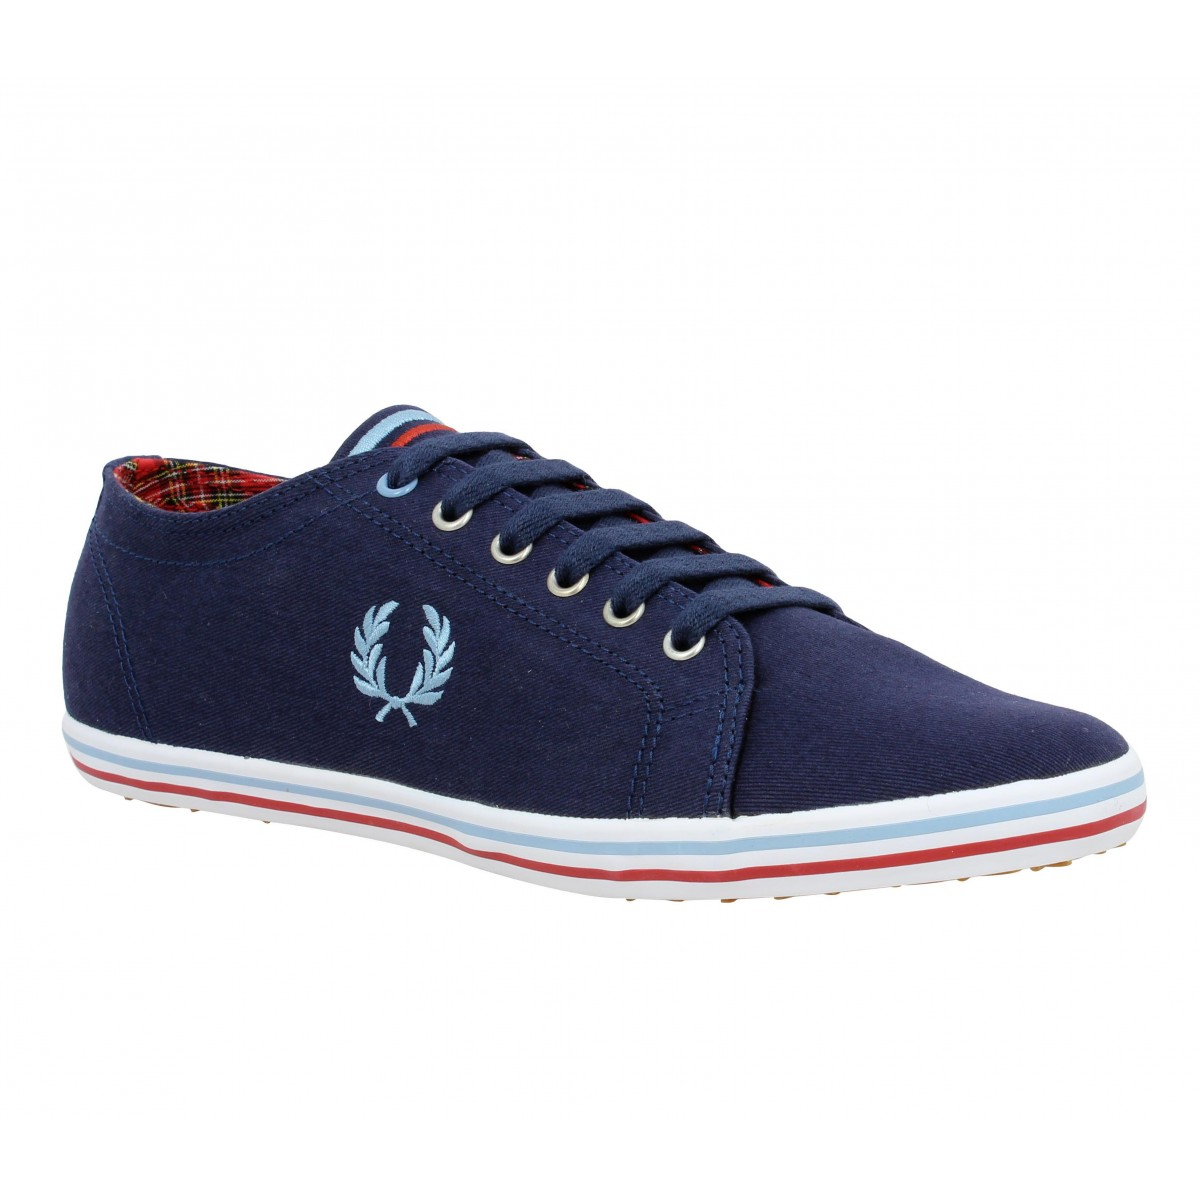 Baskets FRED PERRY Kingston toile Homme Marine + Bleu Ciel